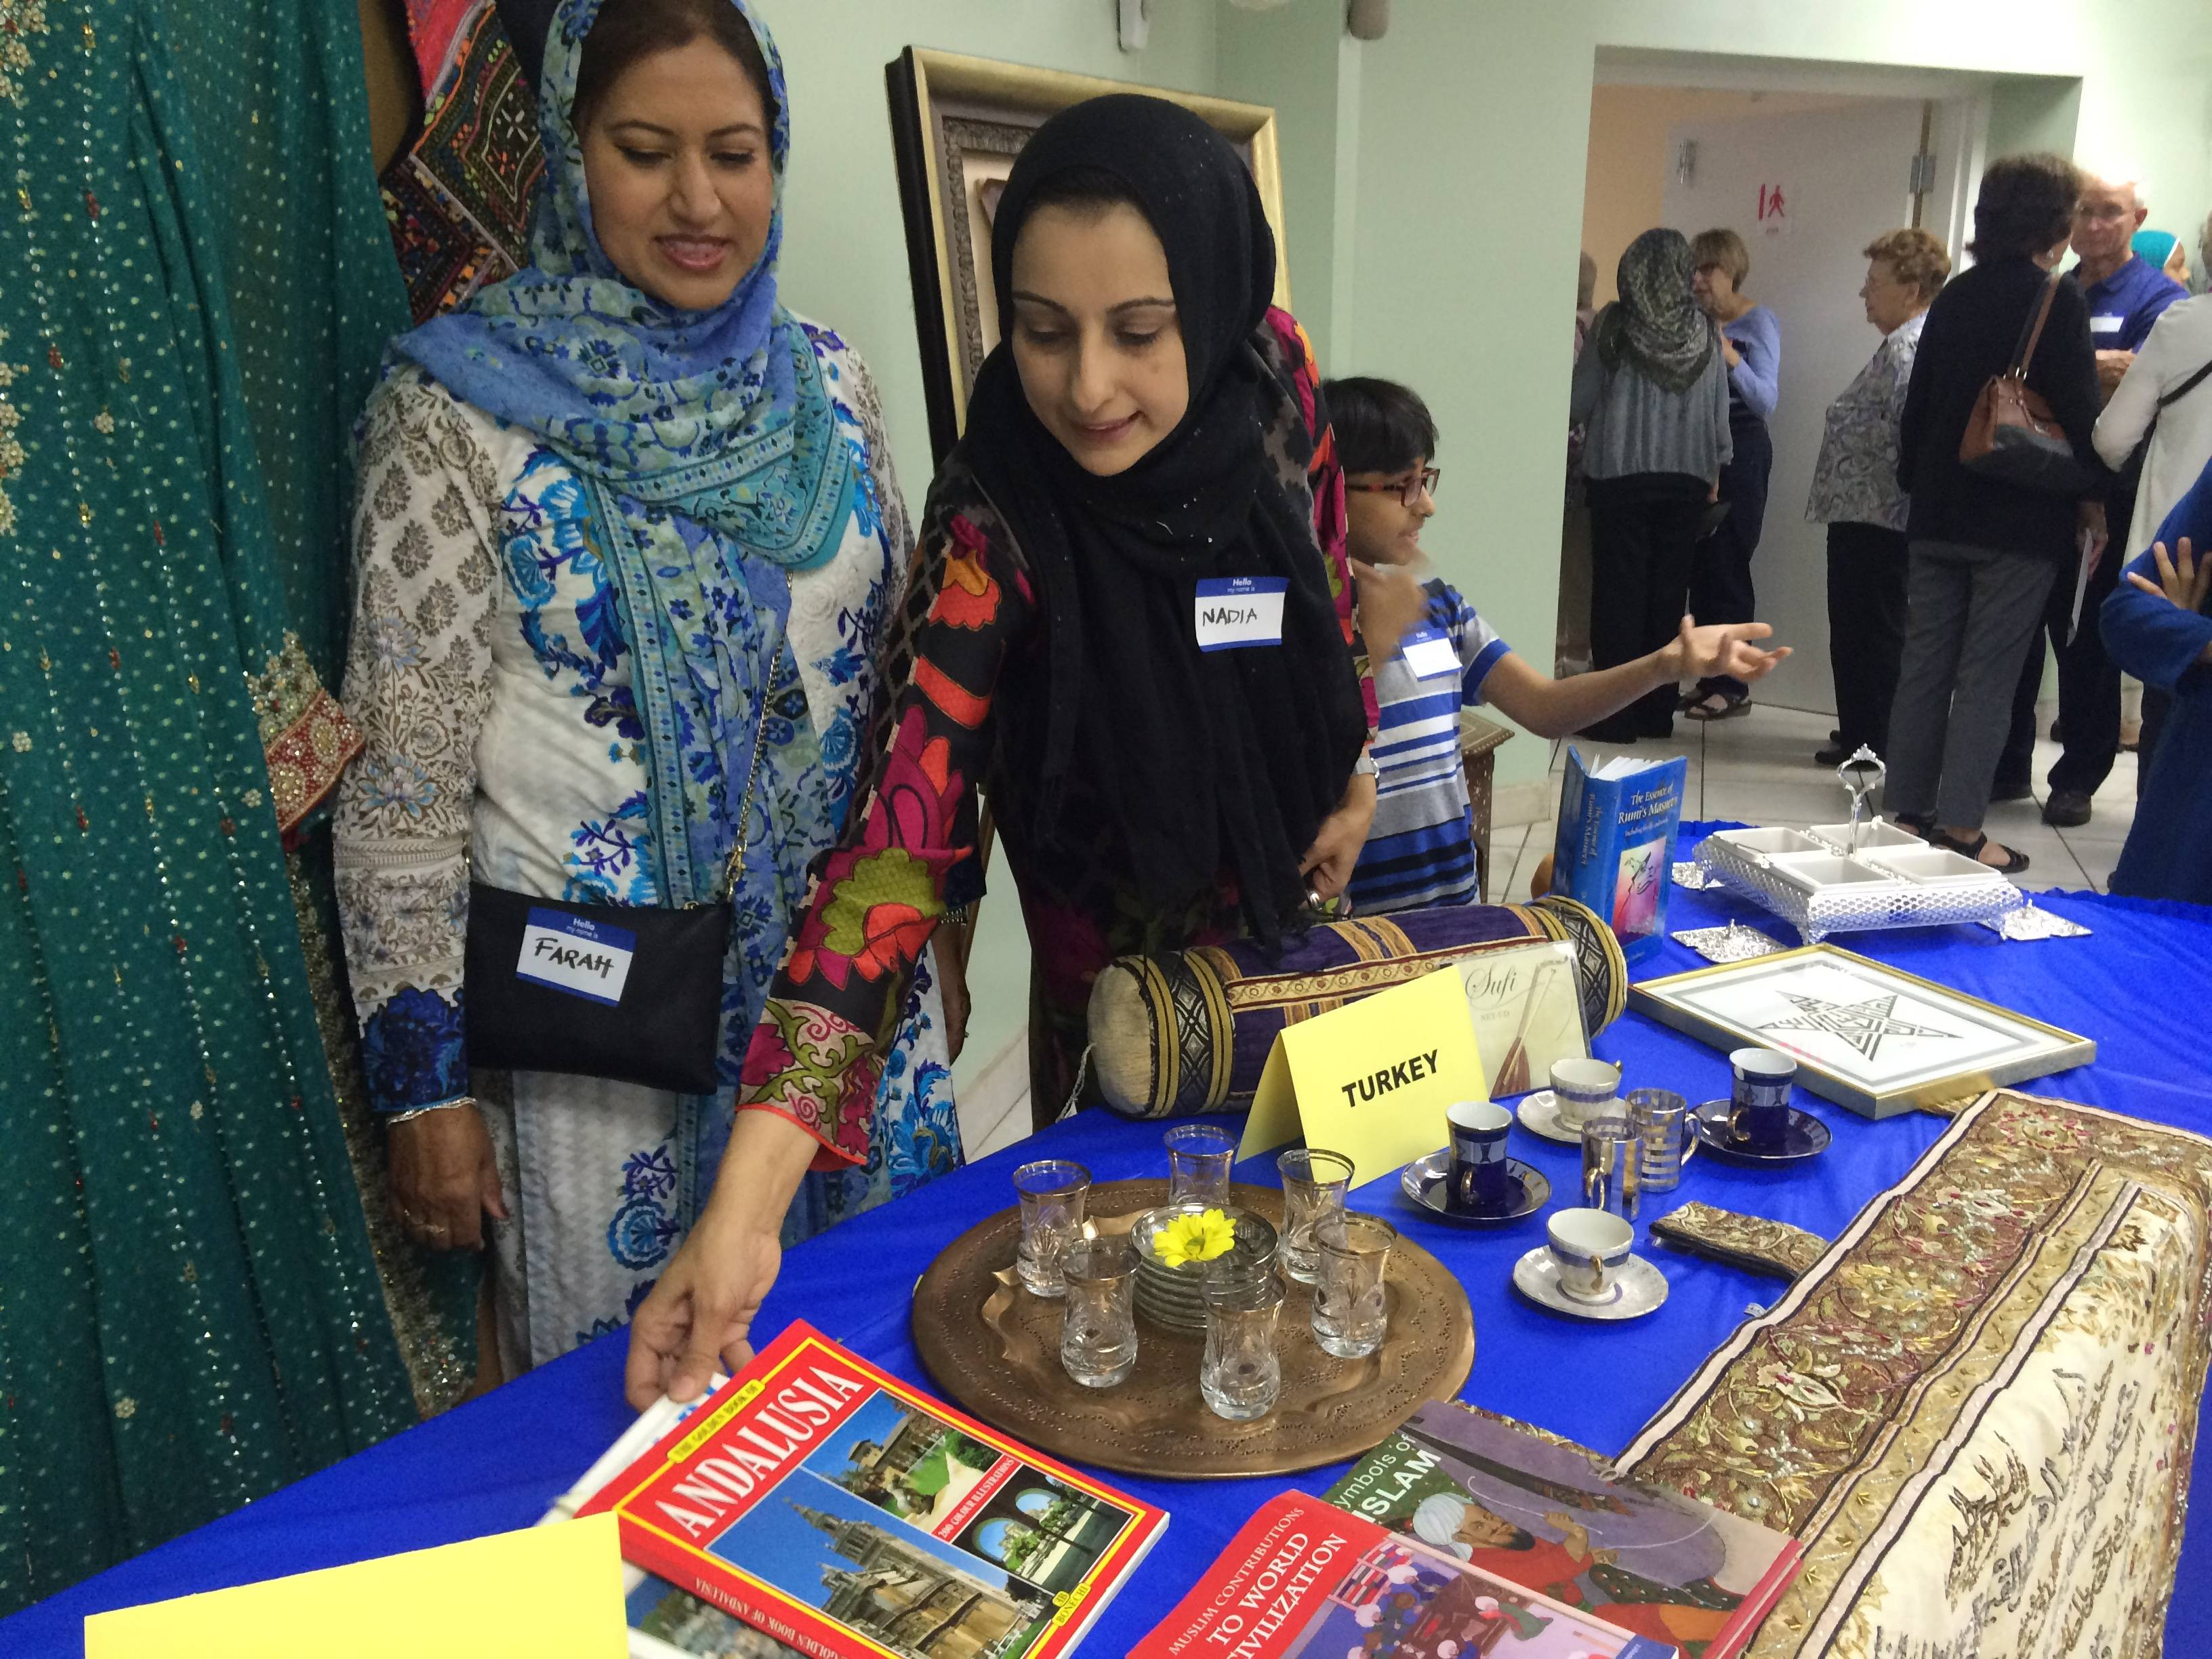 Farah Ahmed of Vernon Hills, left, and Nadia Shah of Long Grove show objects from Turkey and other Islamic countries during an open house Saturday at Islamic Foundation North in Libertyville.